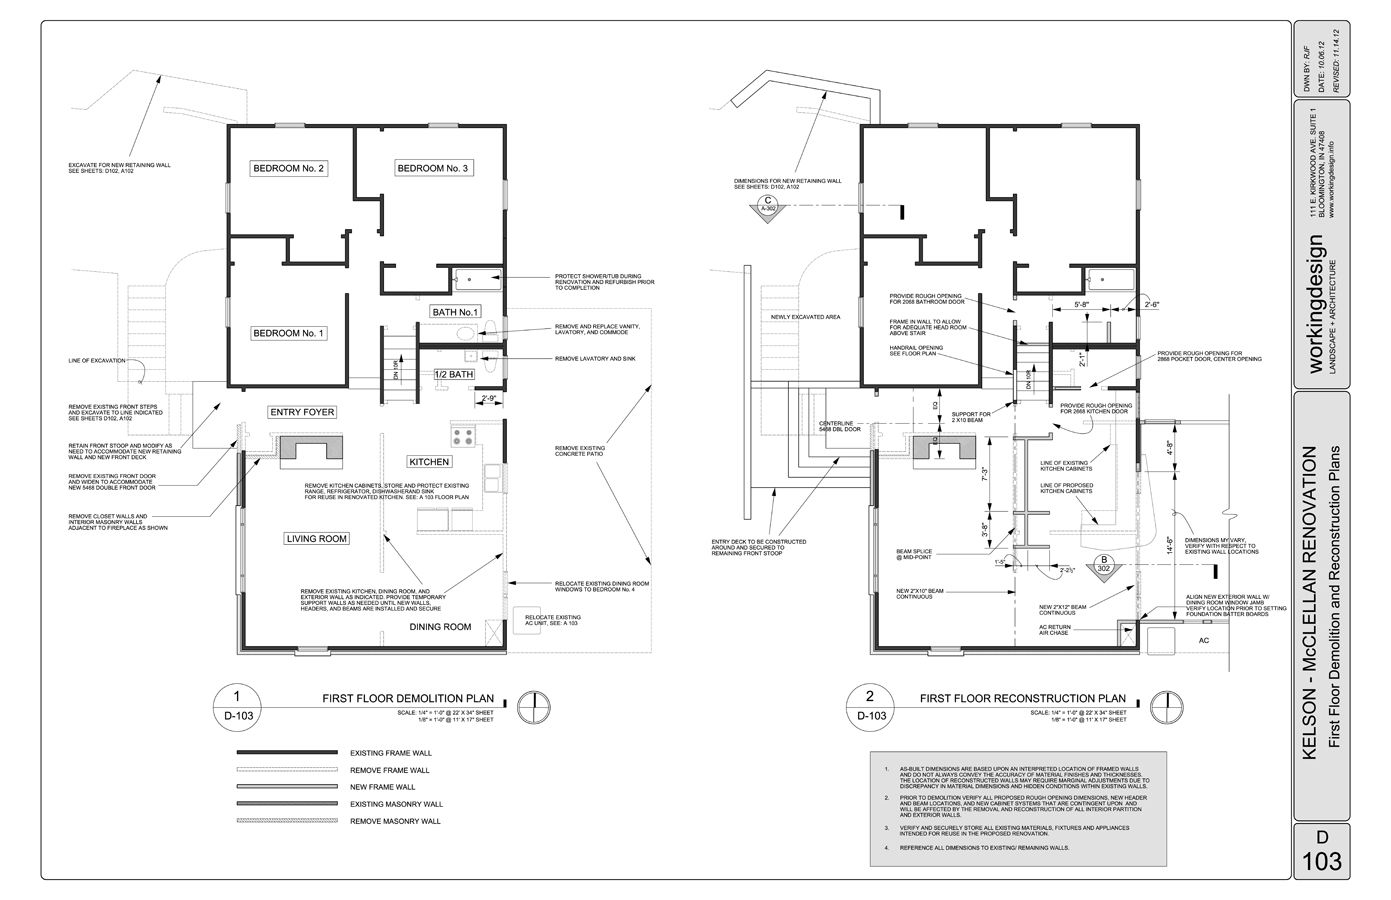 D 103 first floor demolition plan 1391 900 for Demolition plan template